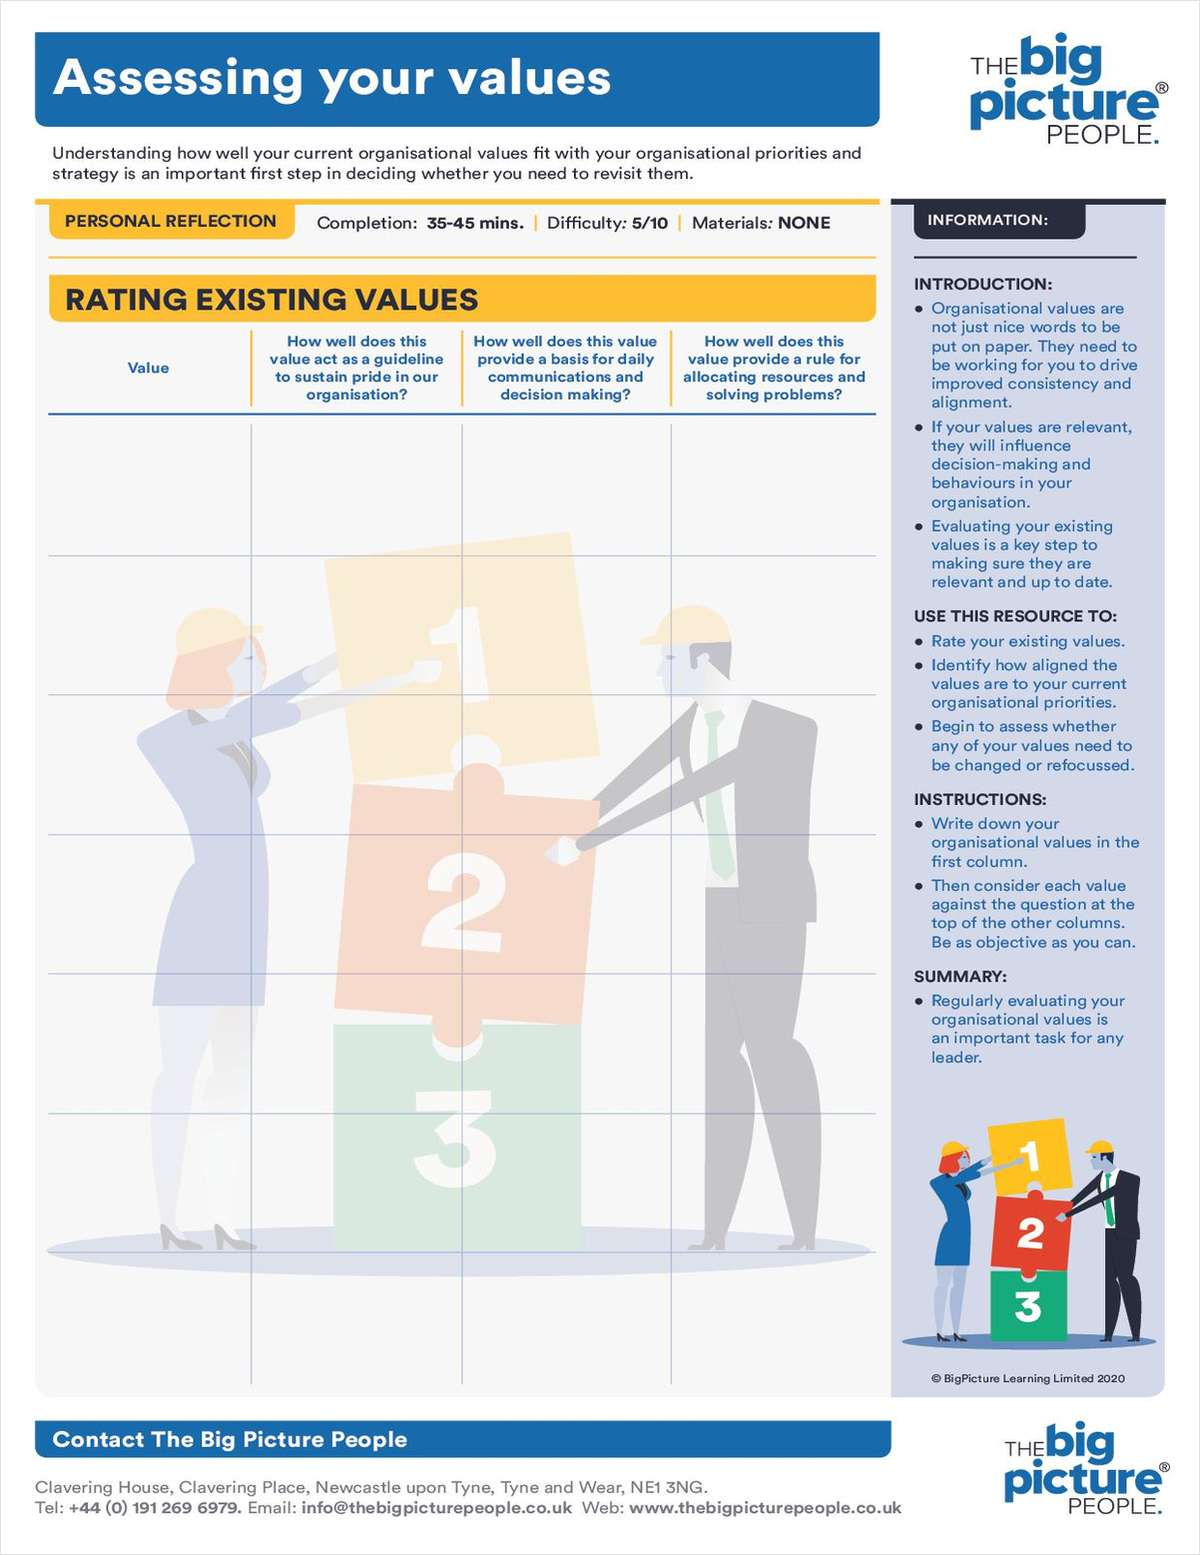 Assessing Your Values